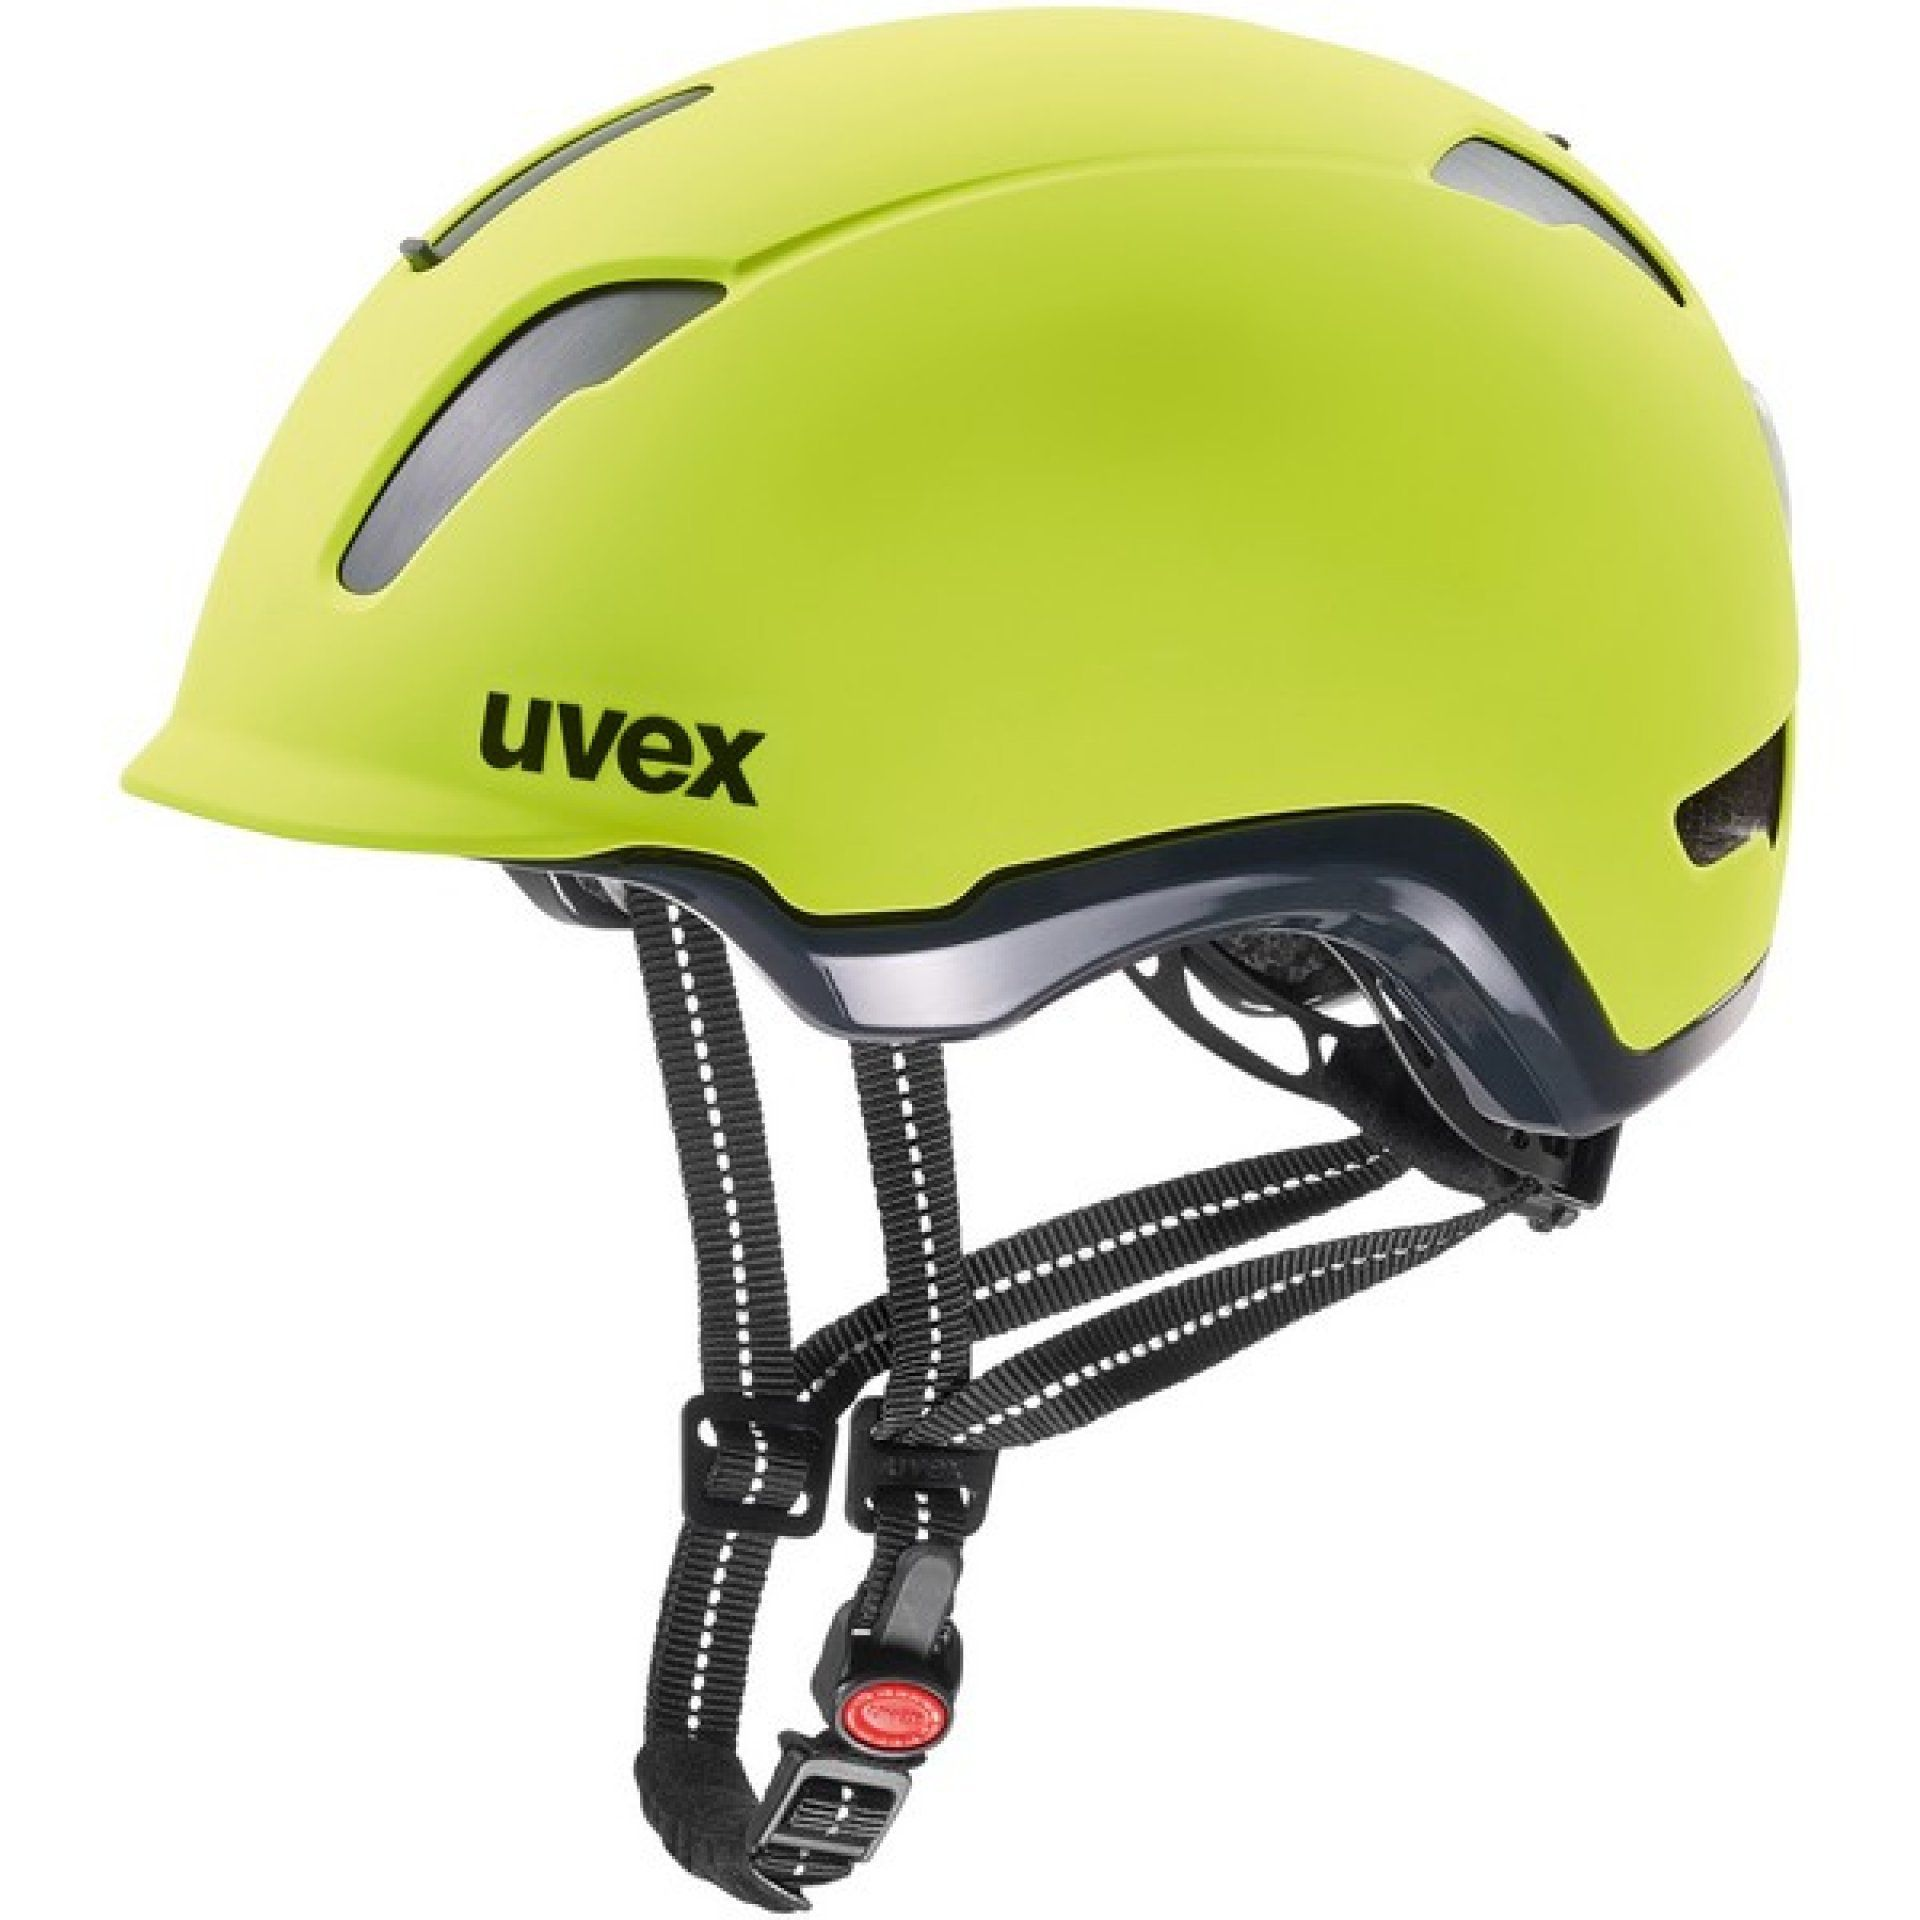 KASK ROWEROWY UVEX CITY 9 NEON YELLOW 1